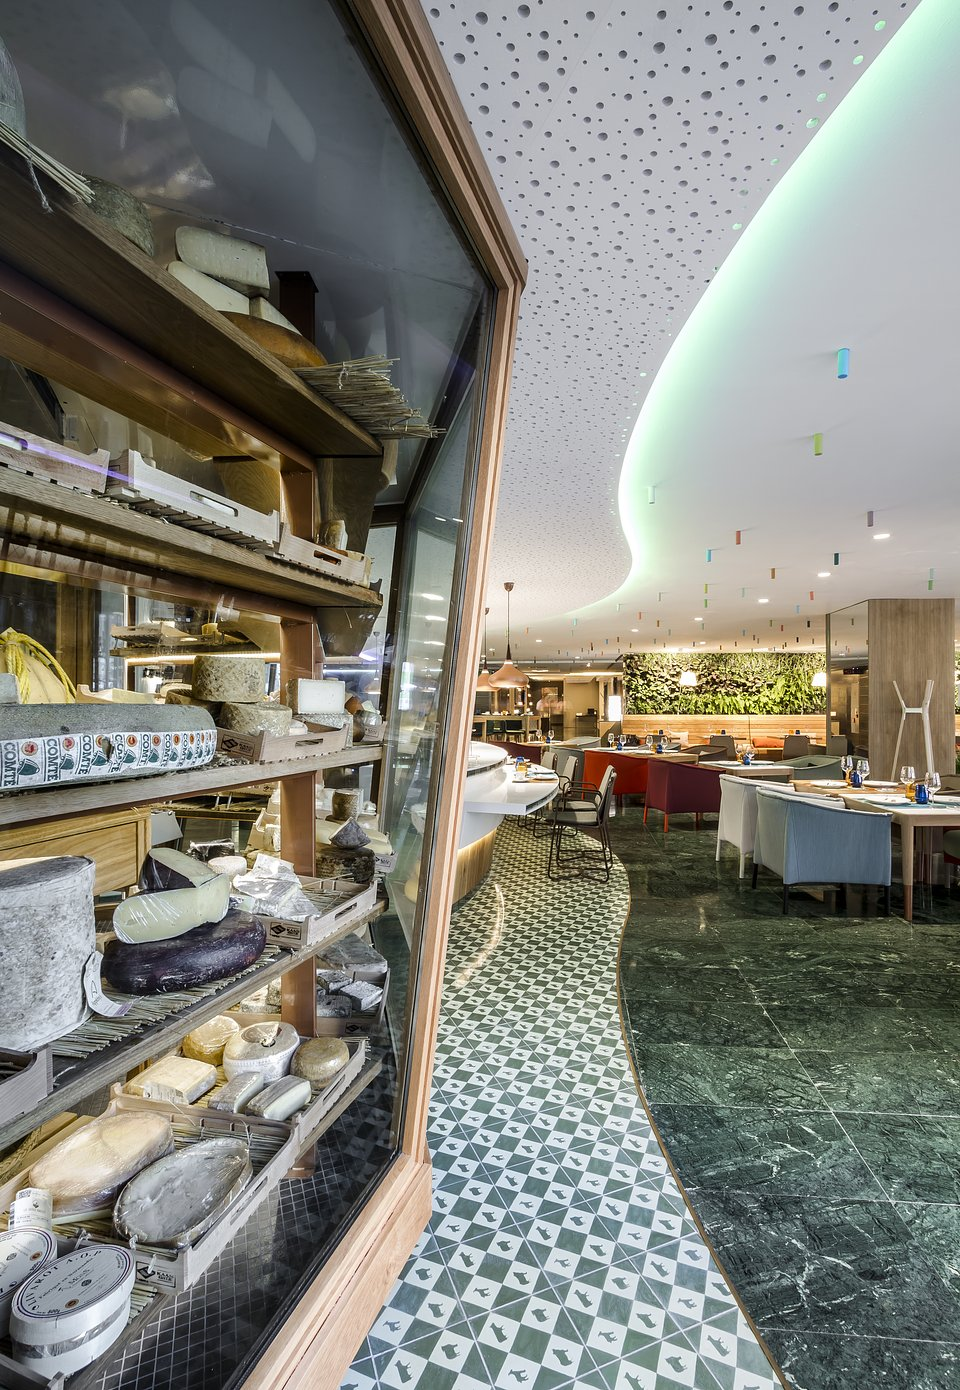 19 Cheese Bar Barcelona Poncelet.jpg